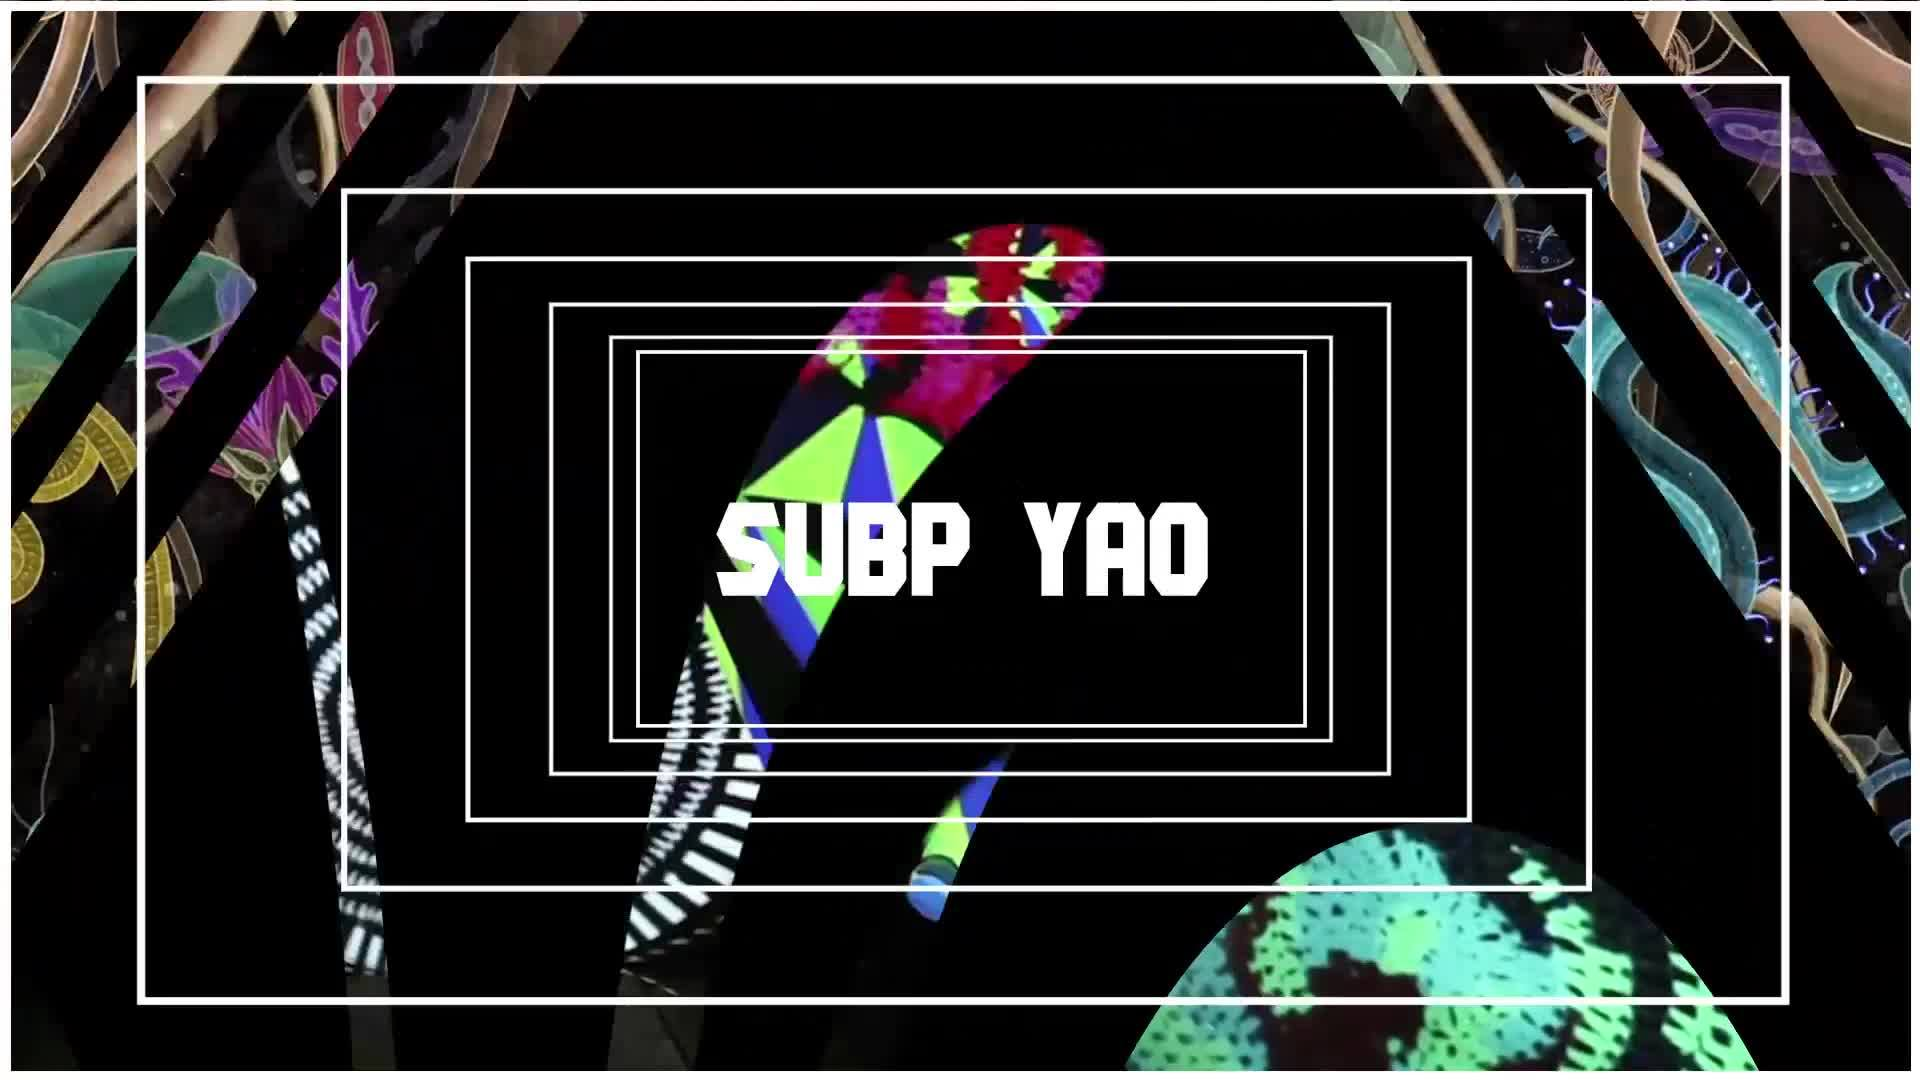 Unchained Recordings 001 ⛓ Subp Yao - BACKWITDA EP Out 24th August :: http://hyperurl.co/backwitdaep